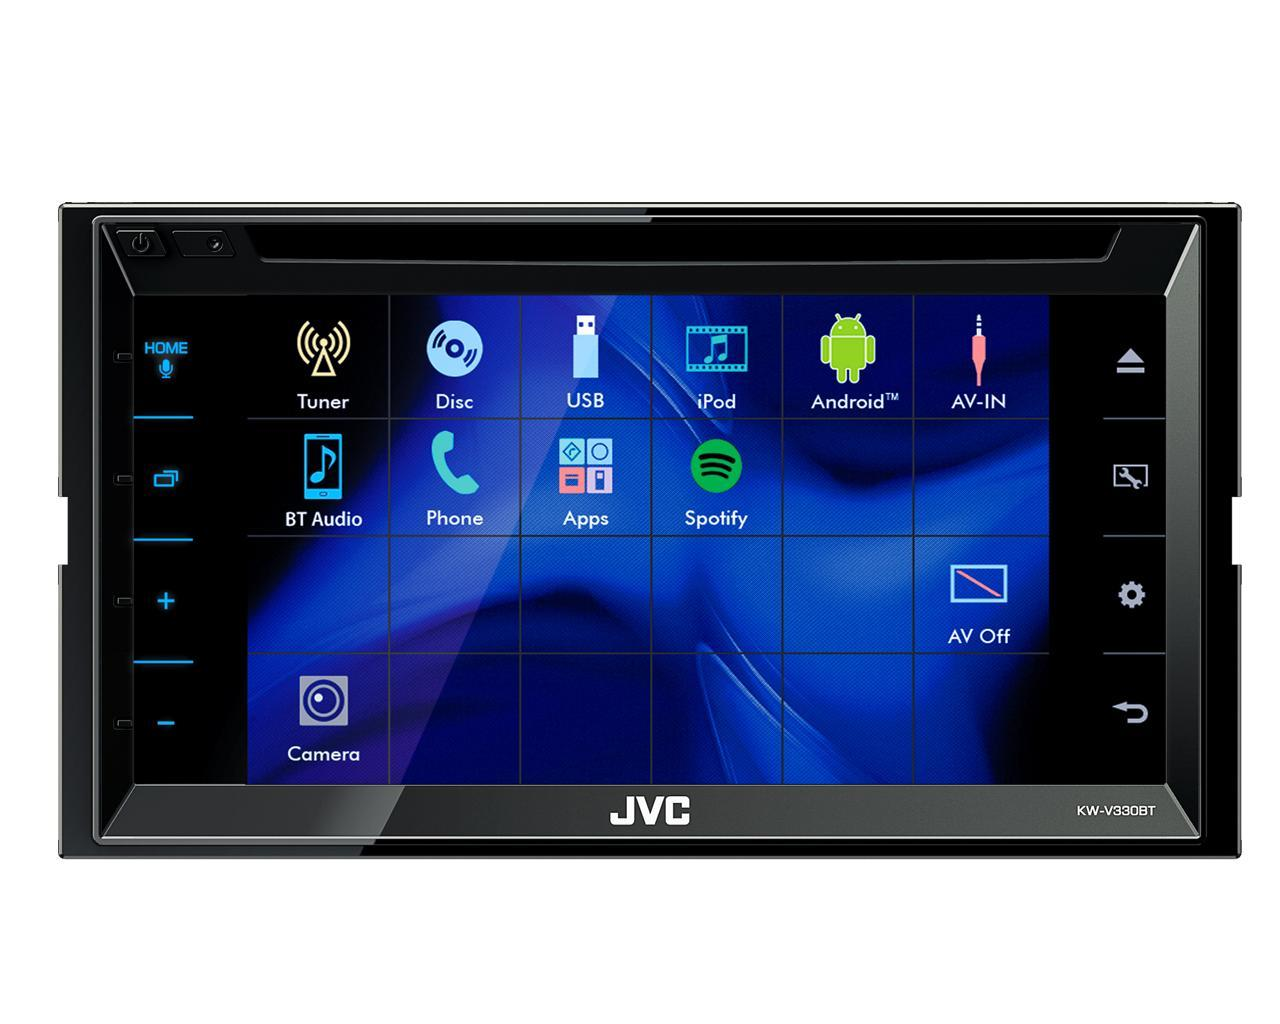 jvc autoradio multimedia 2 din bluetooth 6 8 pouces kw v330bt 455581. Black Bedroom Furniture Sets. Home Design Ideas